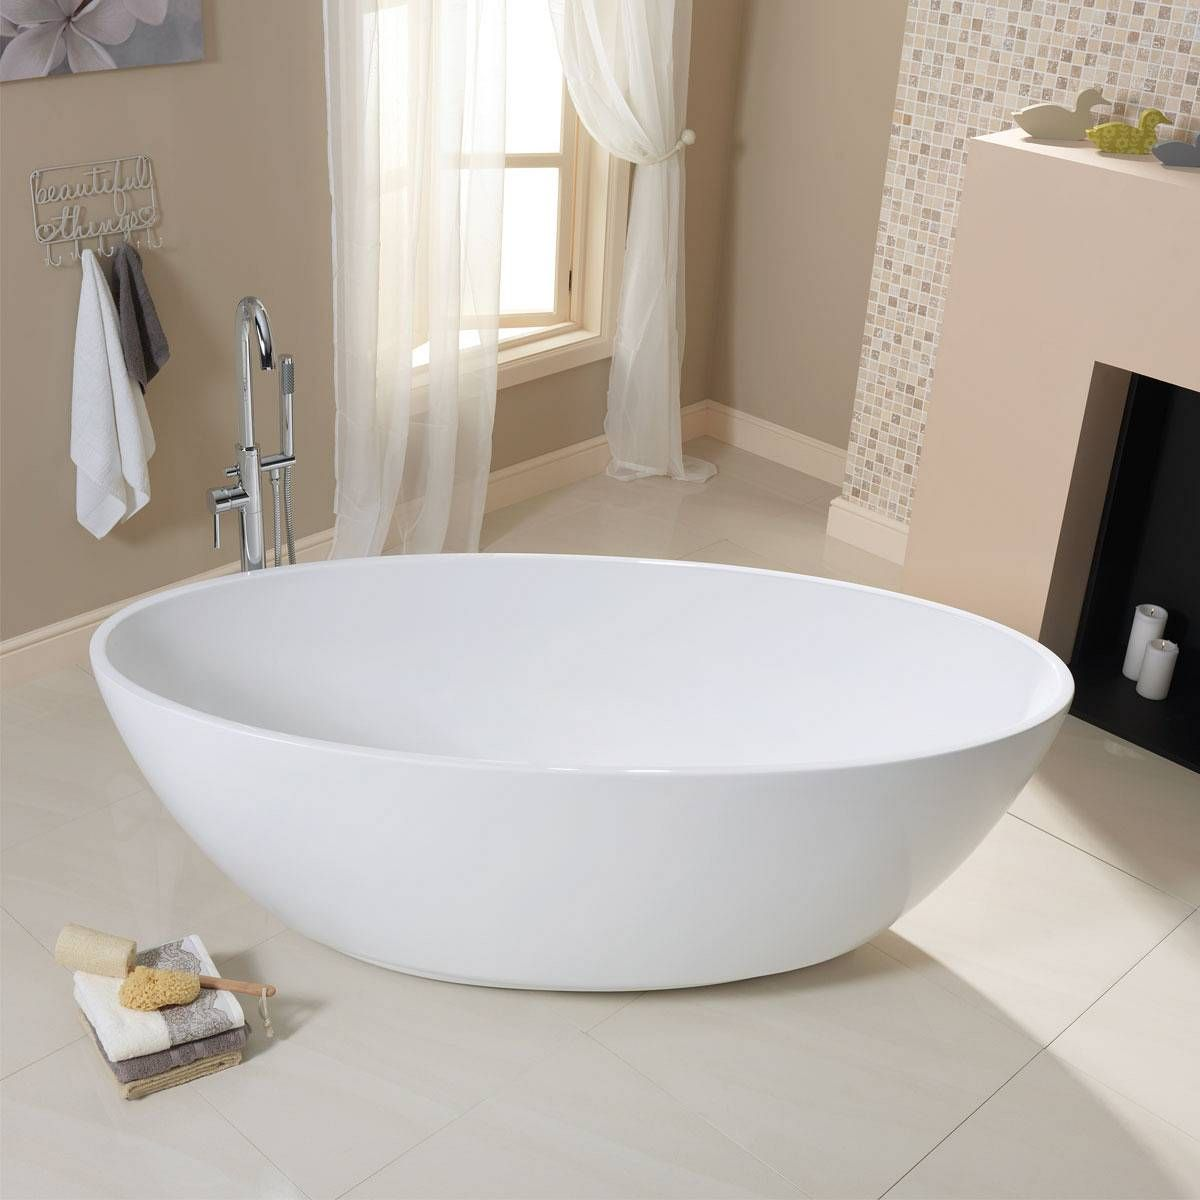 Bathroom Accessories Victoria Plumb harrison roll top bath - looks like an egg! £399 from victoria